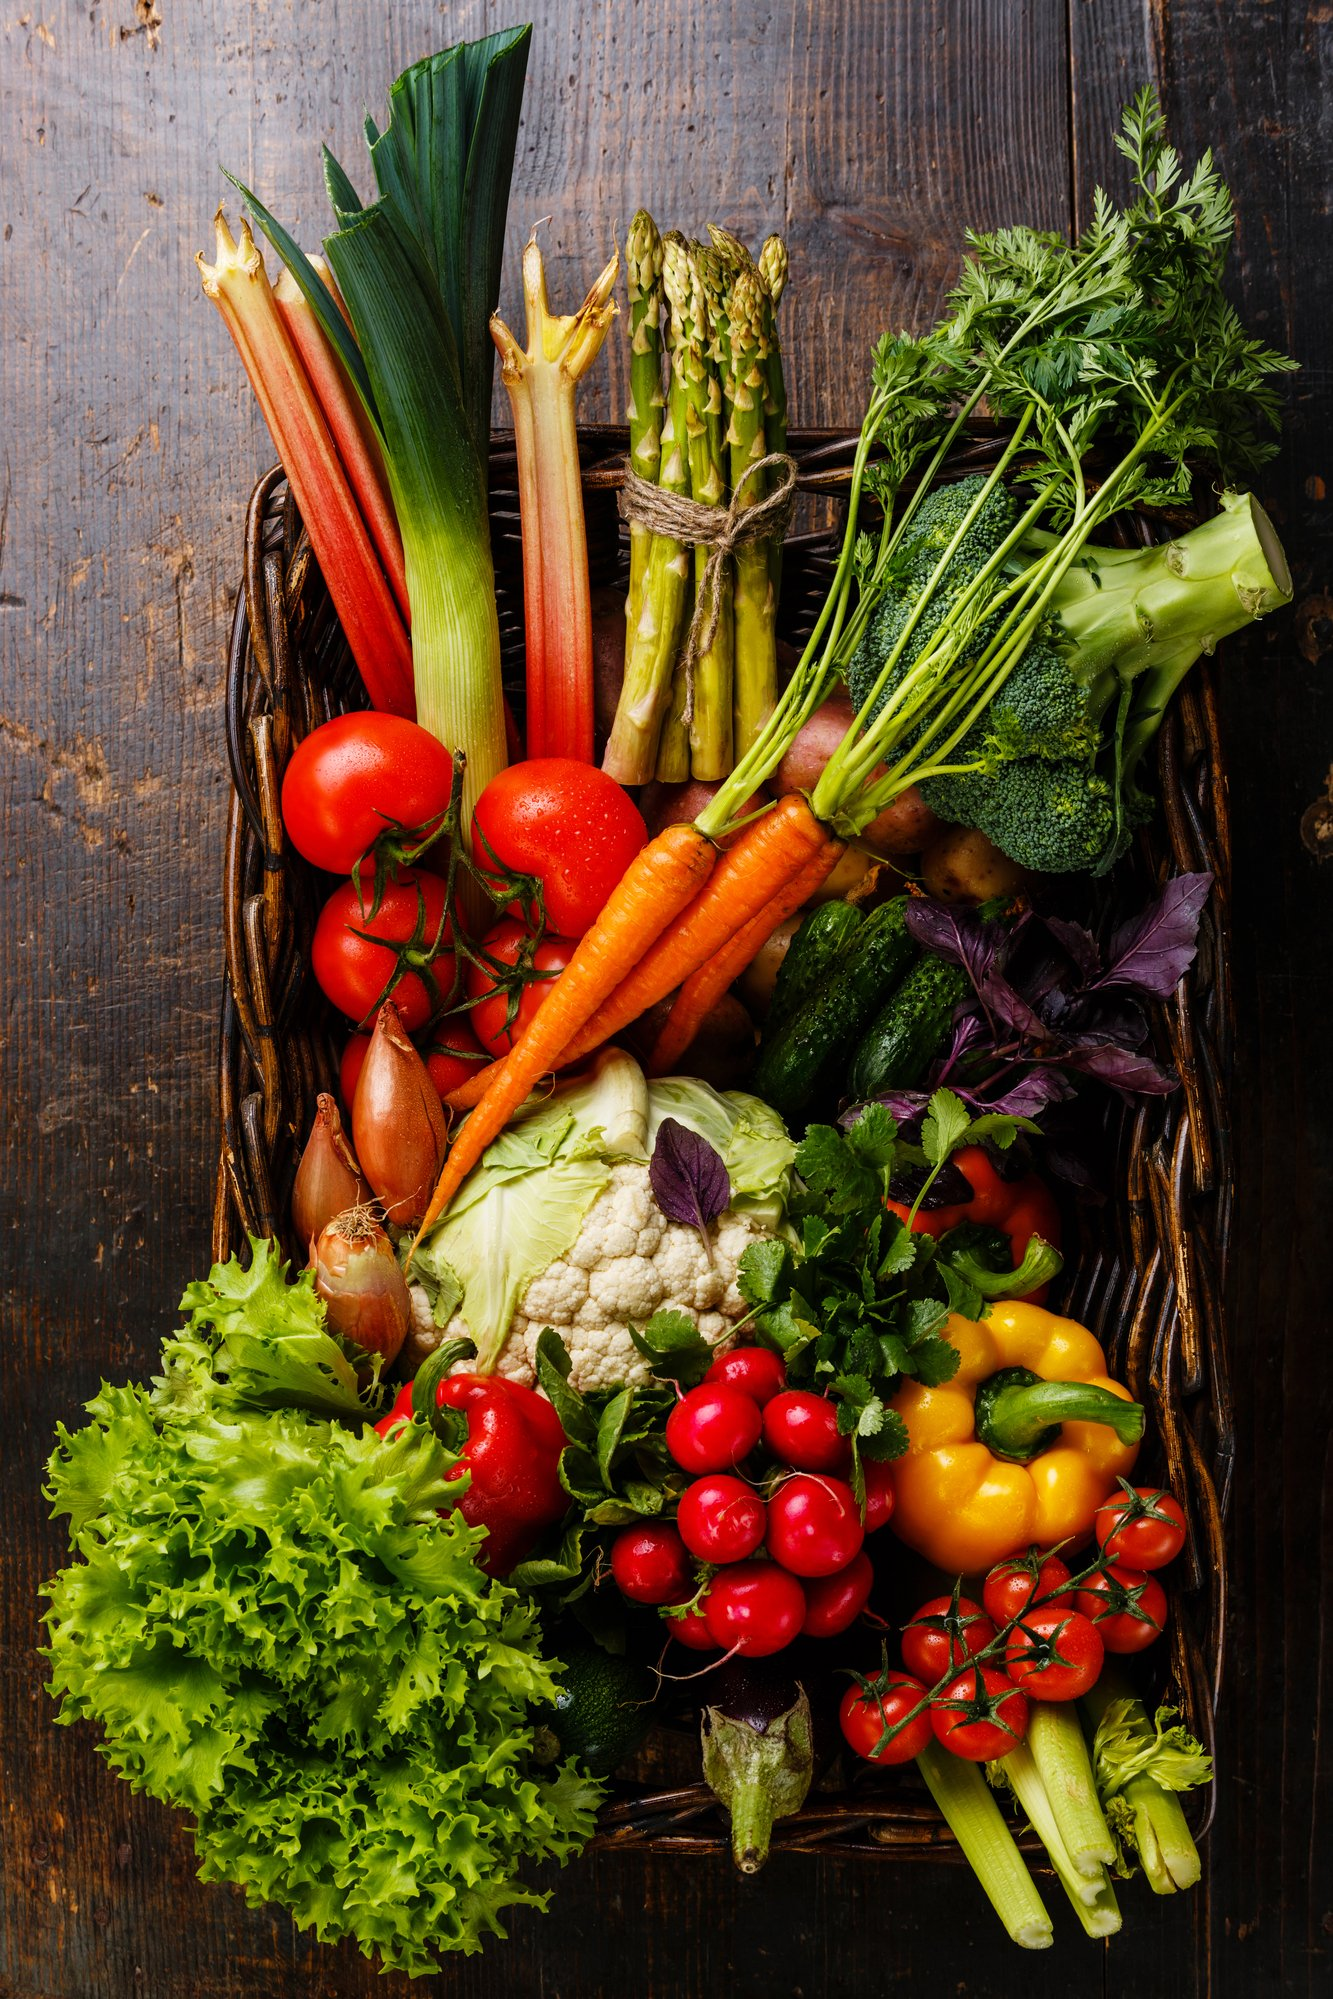 a basket with colorful veggies, how to boost your immune system